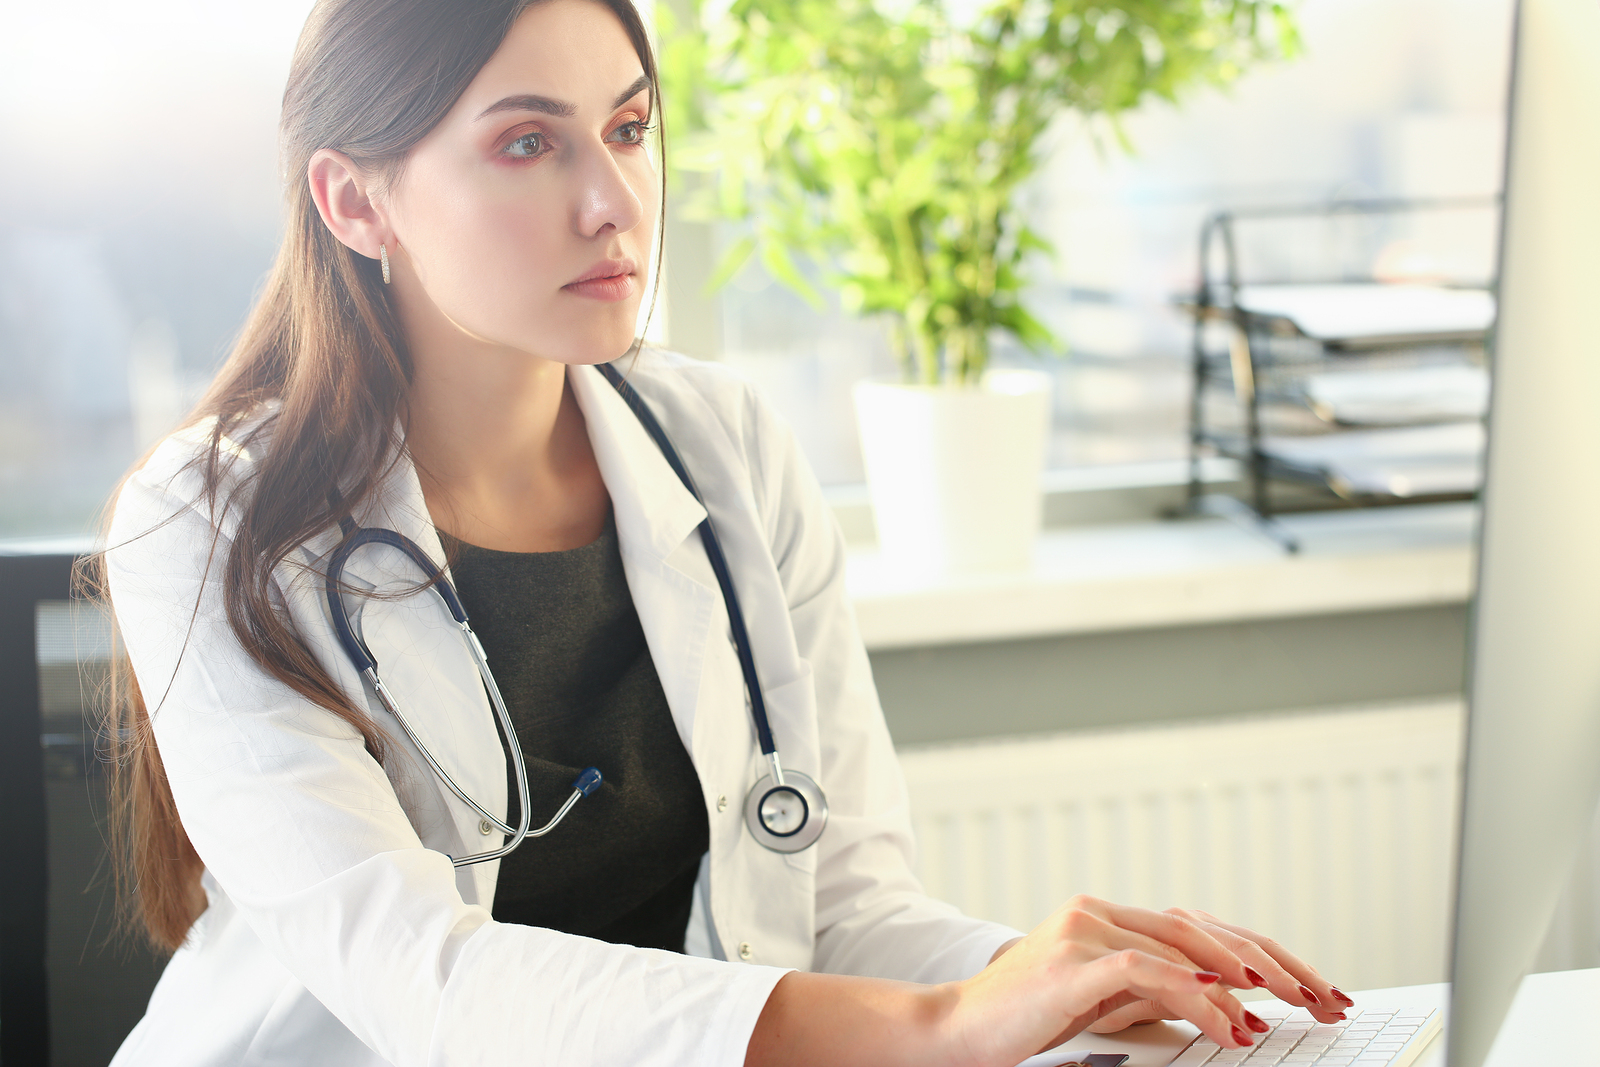 Young Female Doctor Uses Computer In Workplace.